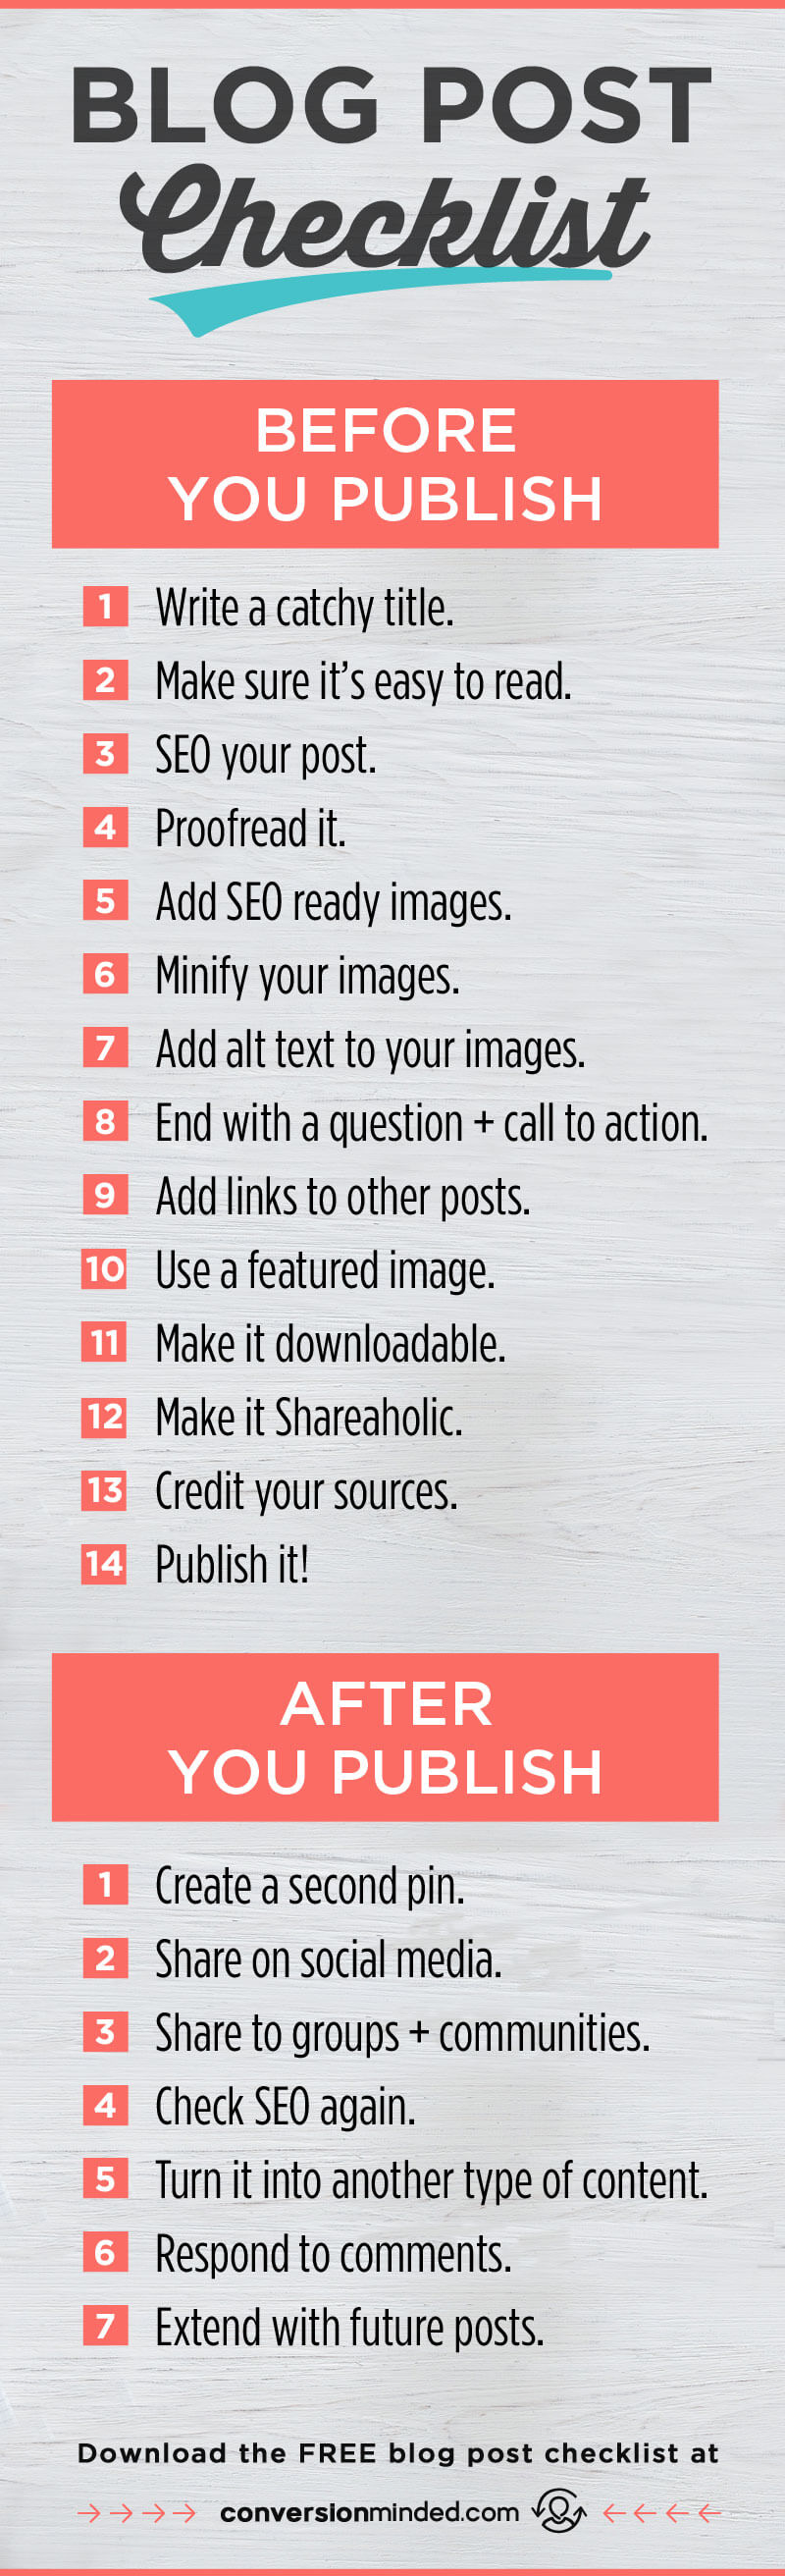 A blog checklist of things every biz owners and blogger should do before and after you publish your posts! The steps listed here will help you optimize your content so you get more subscribers and more people everywhere find your amazing content. Includes a FREE printable checklist to keep handy. Click through to see all the steps!